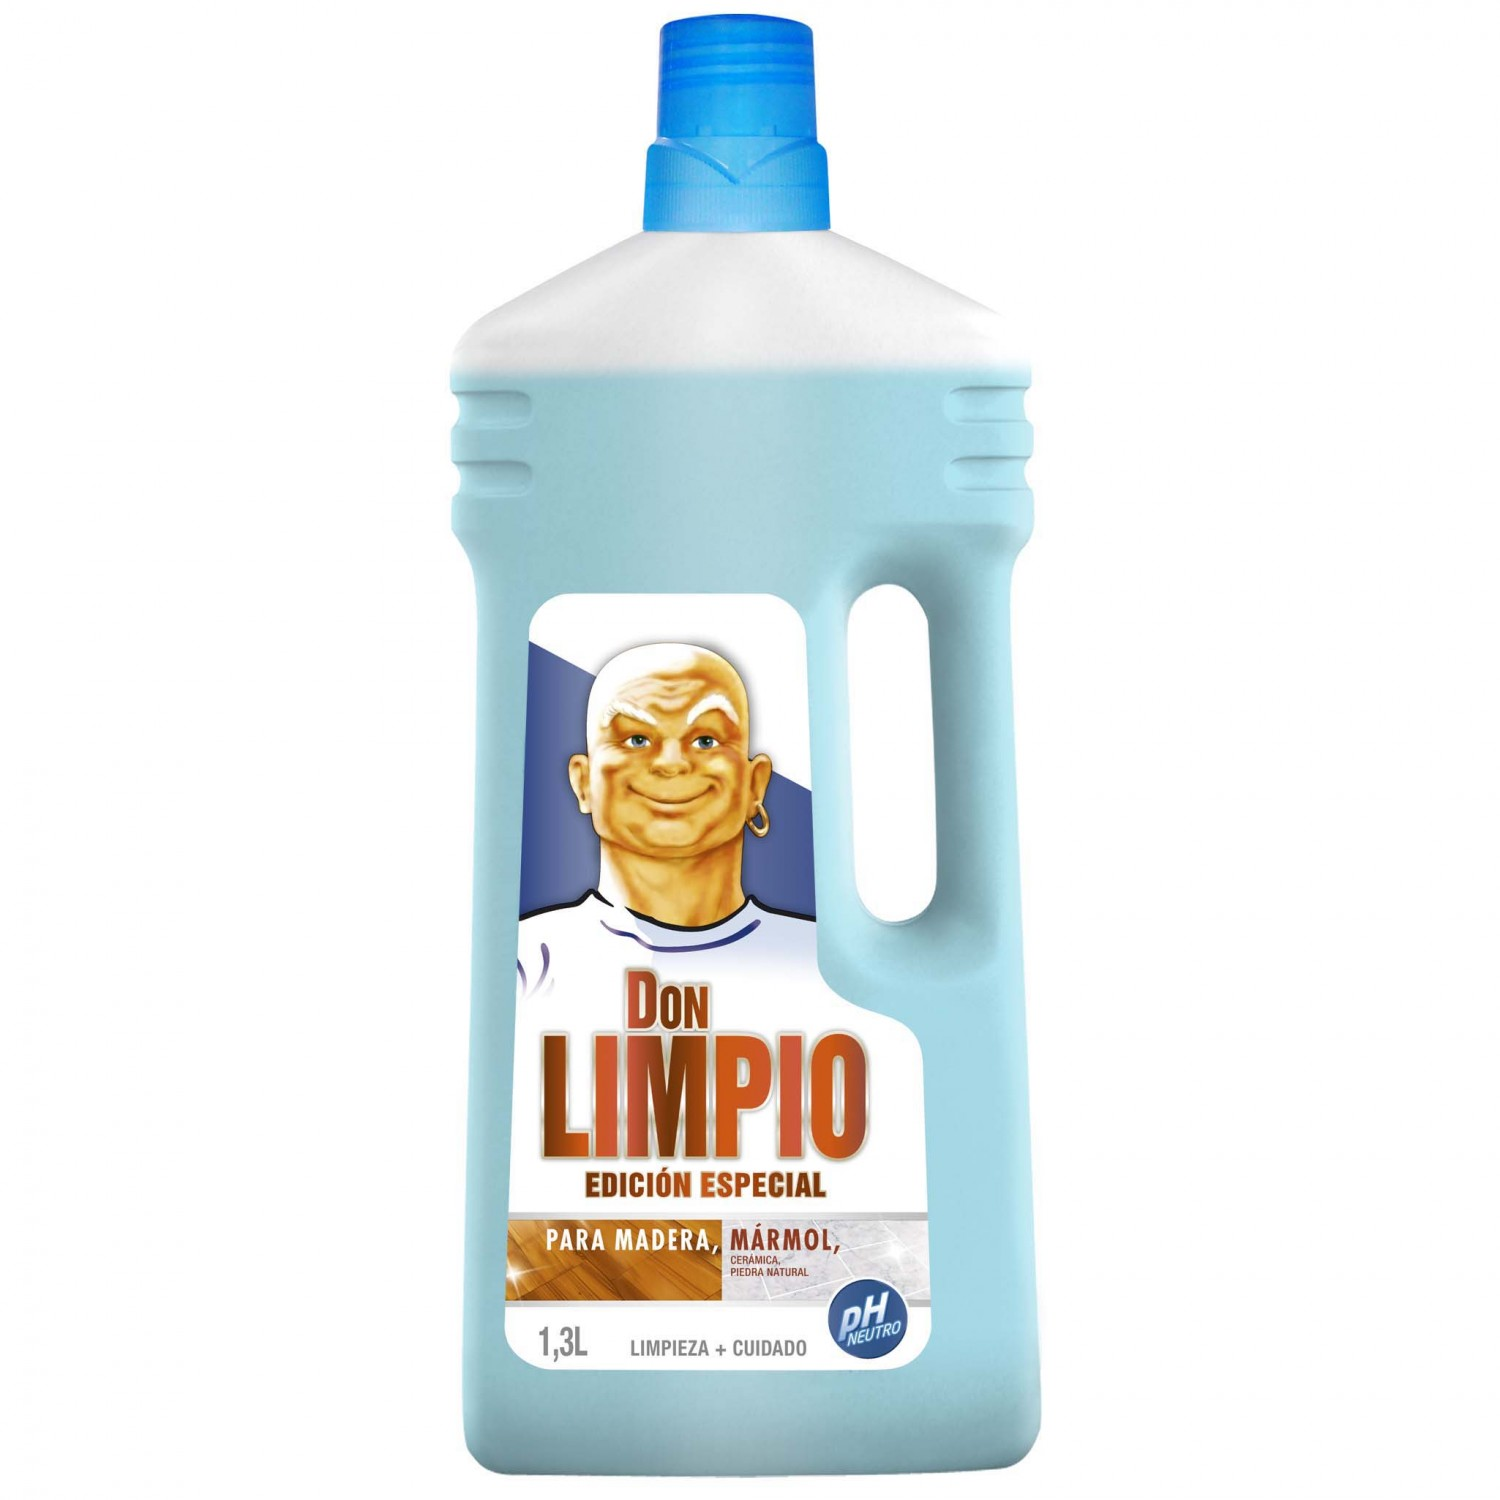 Don Limpio limpiahogar ph neutro de 1,3l.